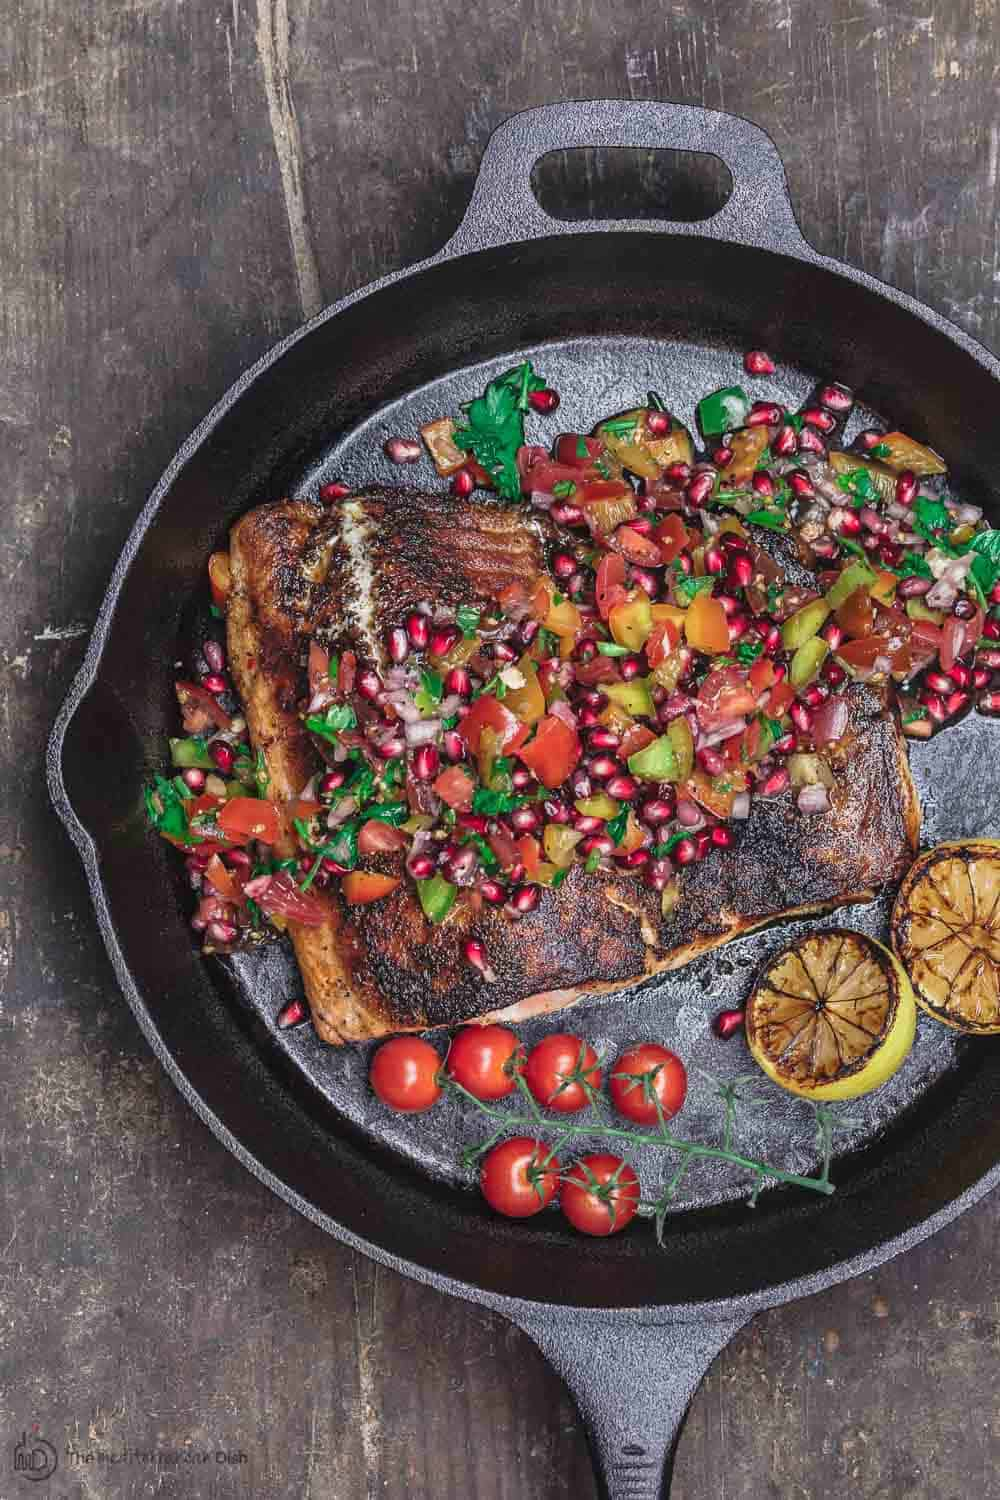 Mediterranean Blackened Salmon with Pomegranate Salsa and Grilled Lemon Halves